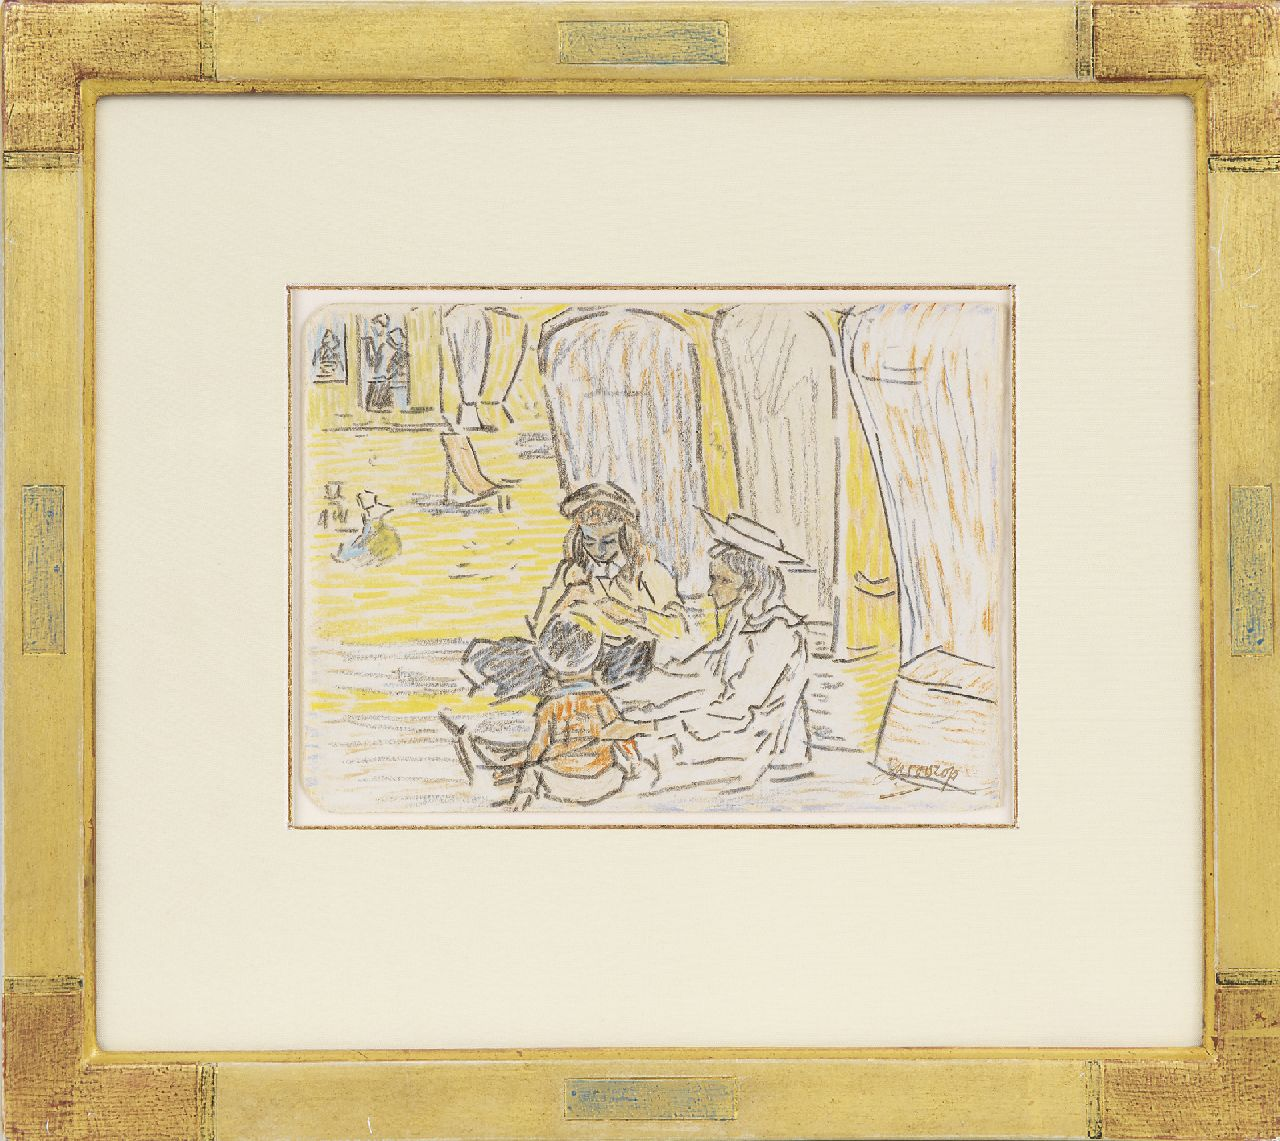 Toorop J.Th.  | Johannes Theodorus 'Jan' Toorop, Children playing on the beach, pencil and coloured chalk on paper 11.5 x 15.6 cm, signed l.r. and painted circa 1907